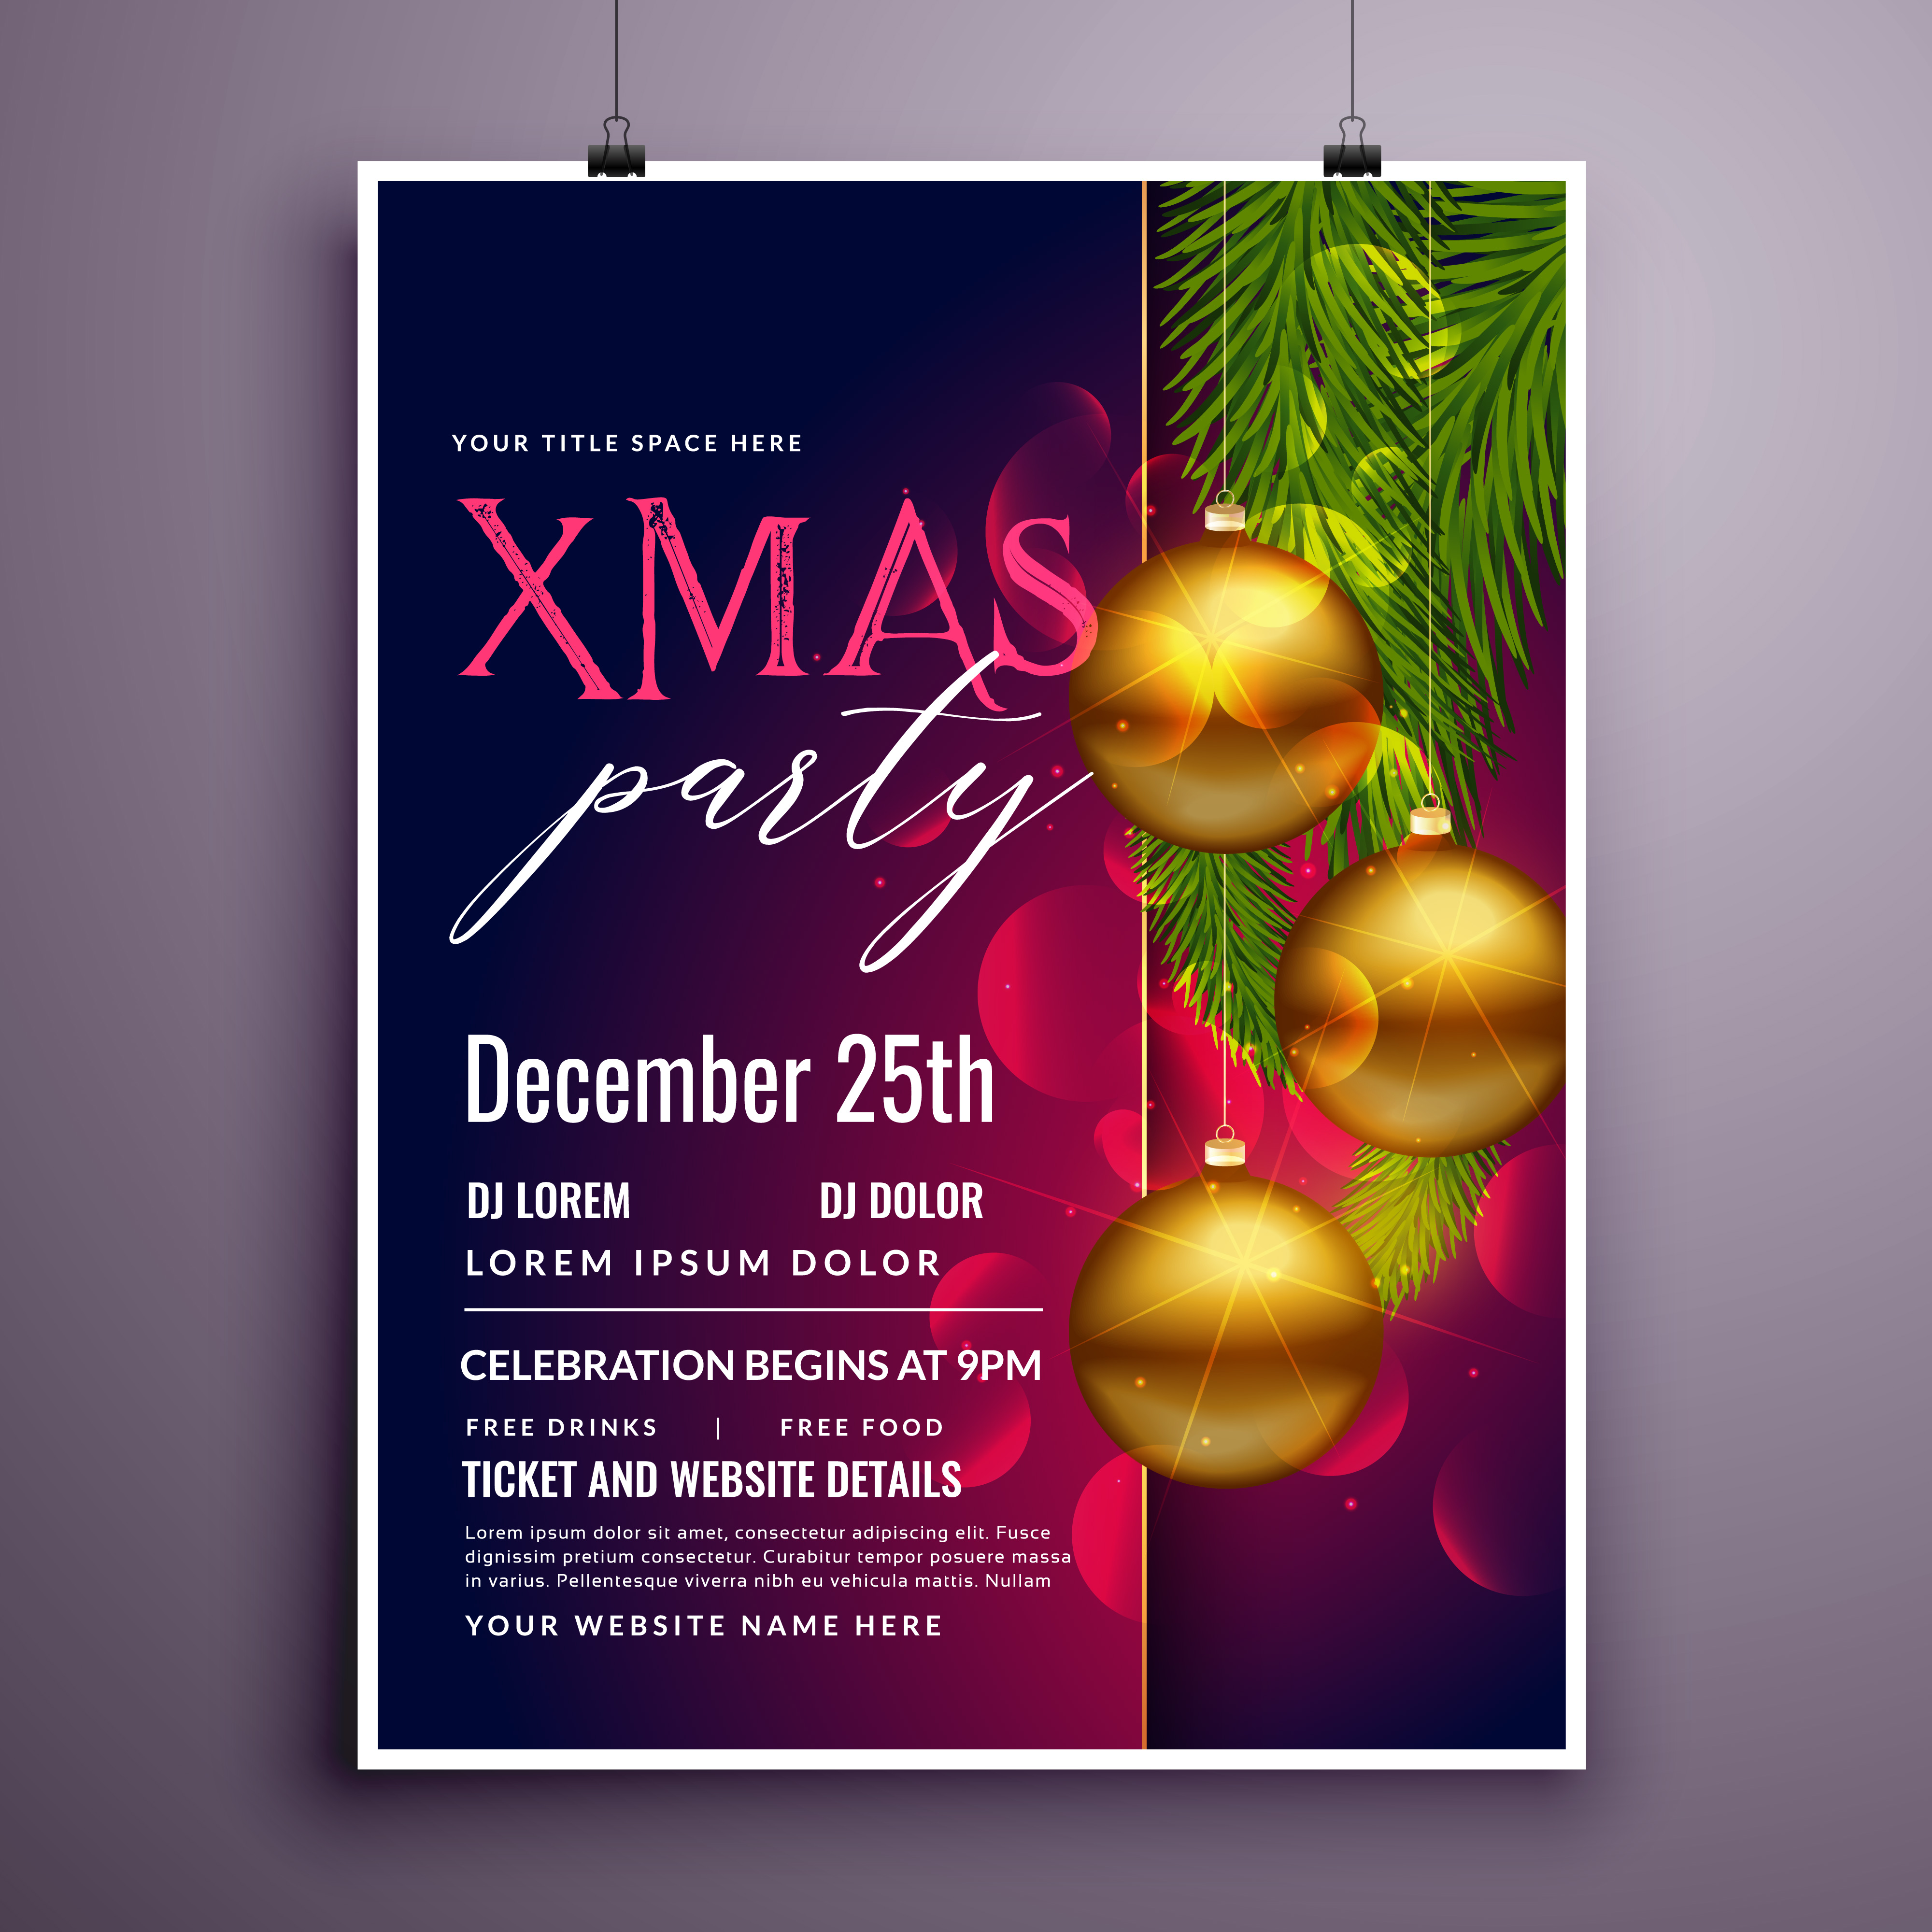 Christmas Poster Free Vector Art 14626 Free Downloads